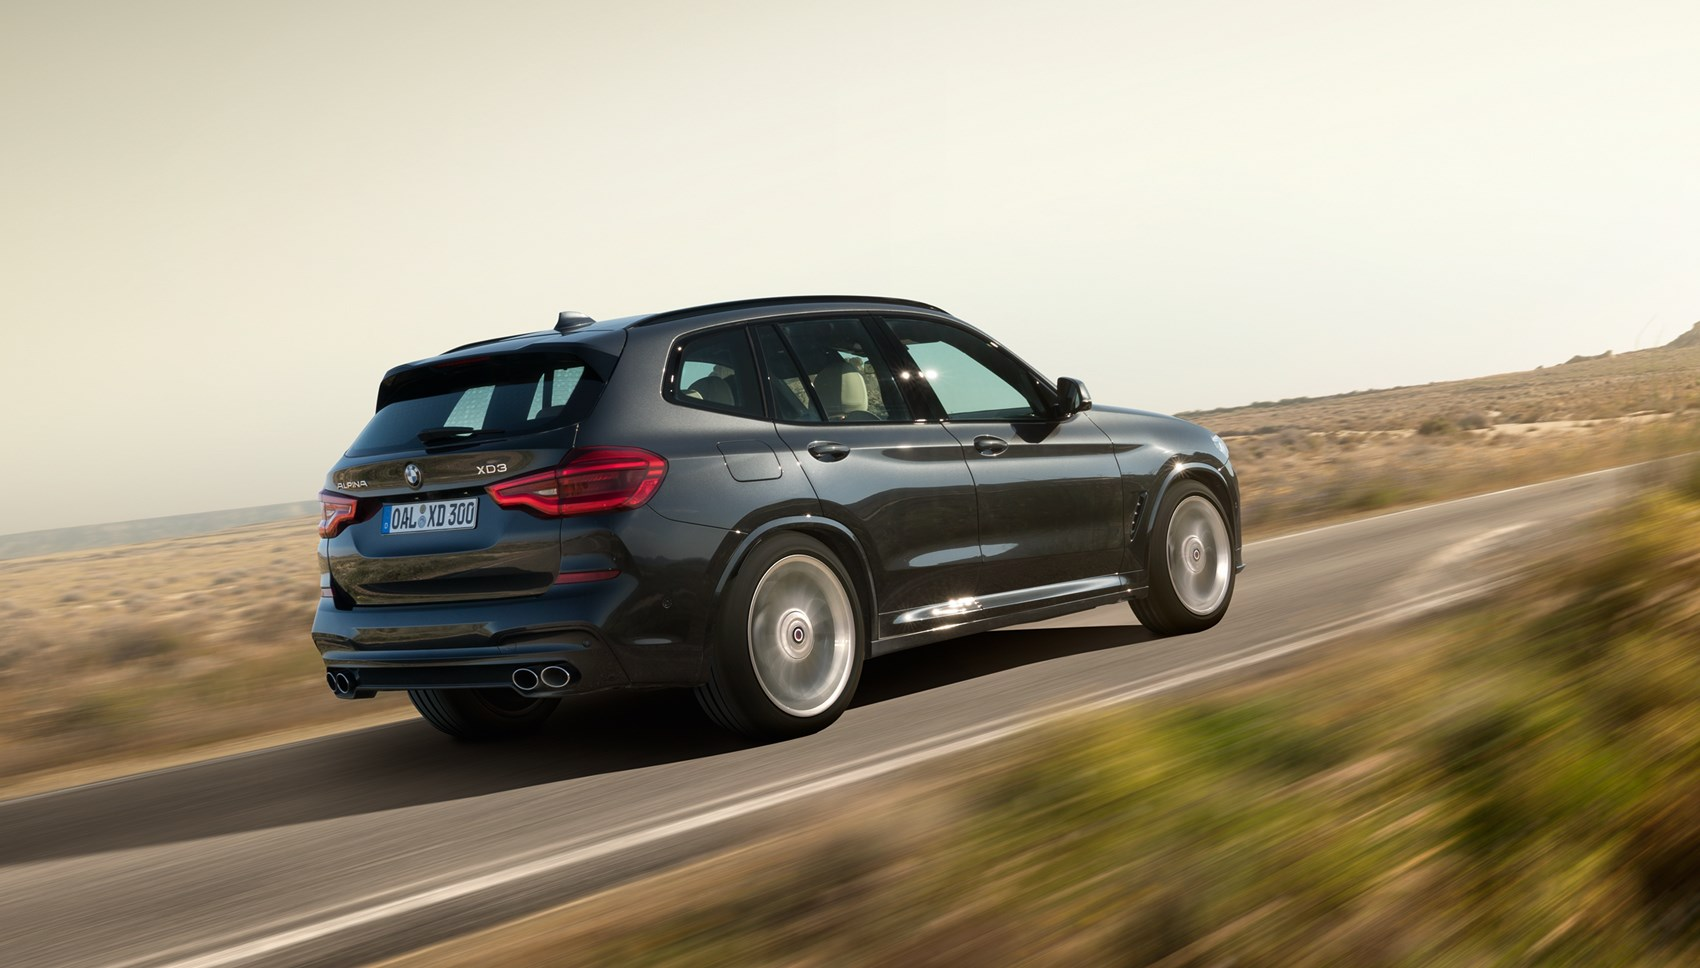 Alpina XD3 rear tracking